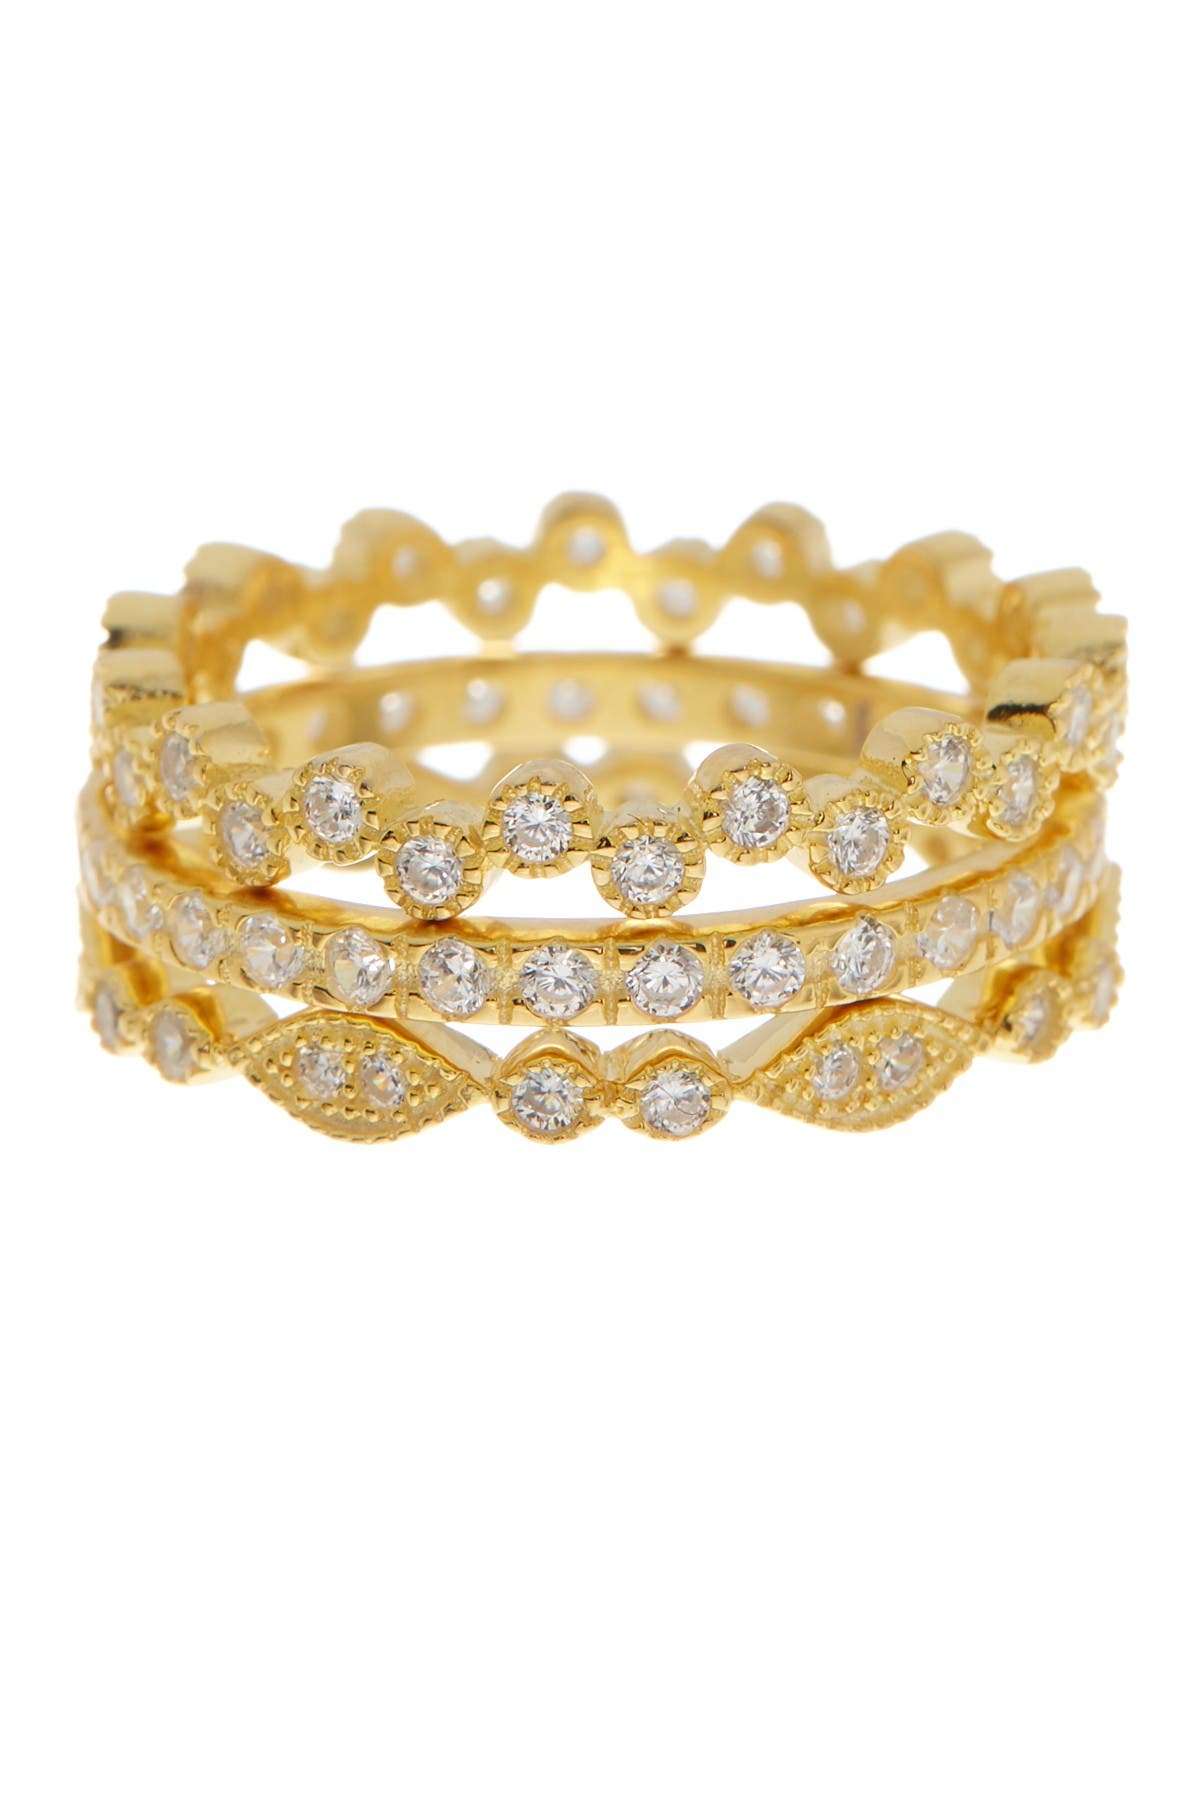 Image of Sterling Forever 14K Gold Vermeil Cubic Zirconia Stackable Ring Set